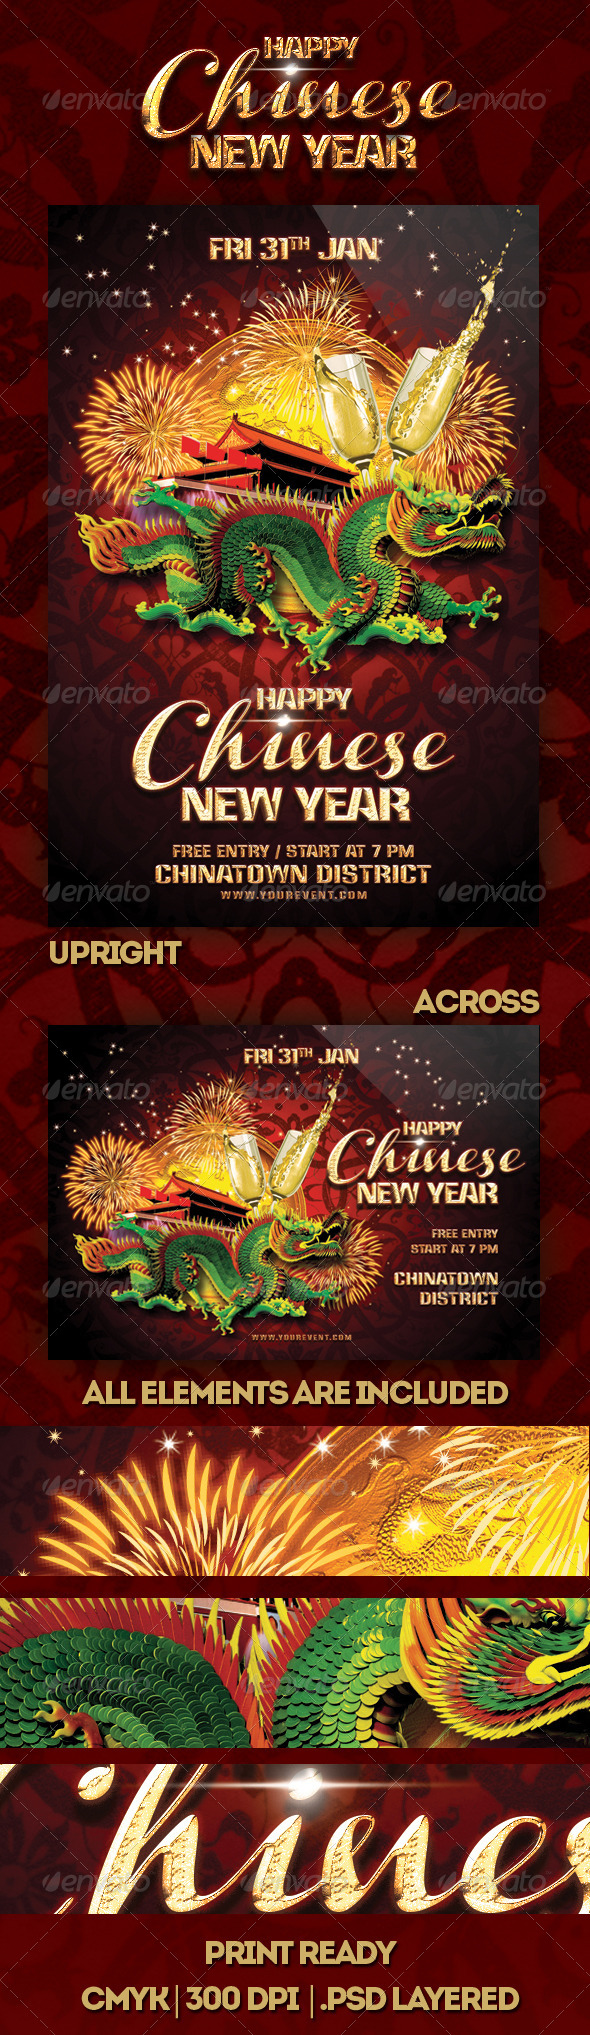 Happy Chinese New Year Flyer